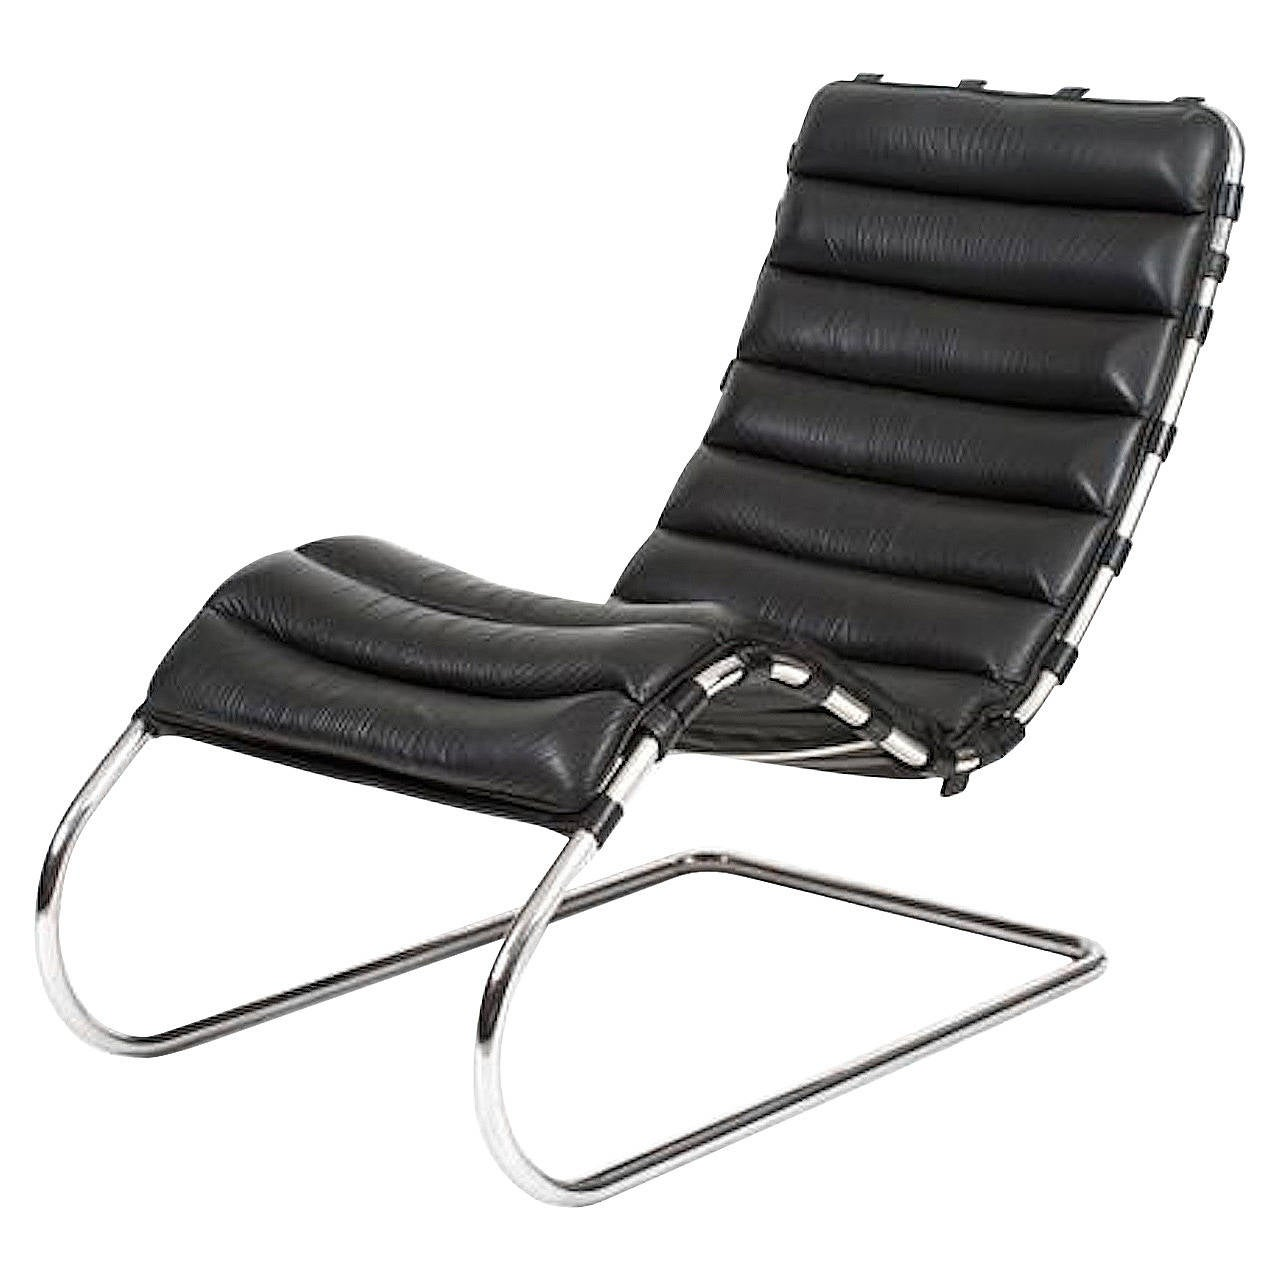 MR Chaise by Mies Van der Rohe for Knoll Studio at 1stdibs